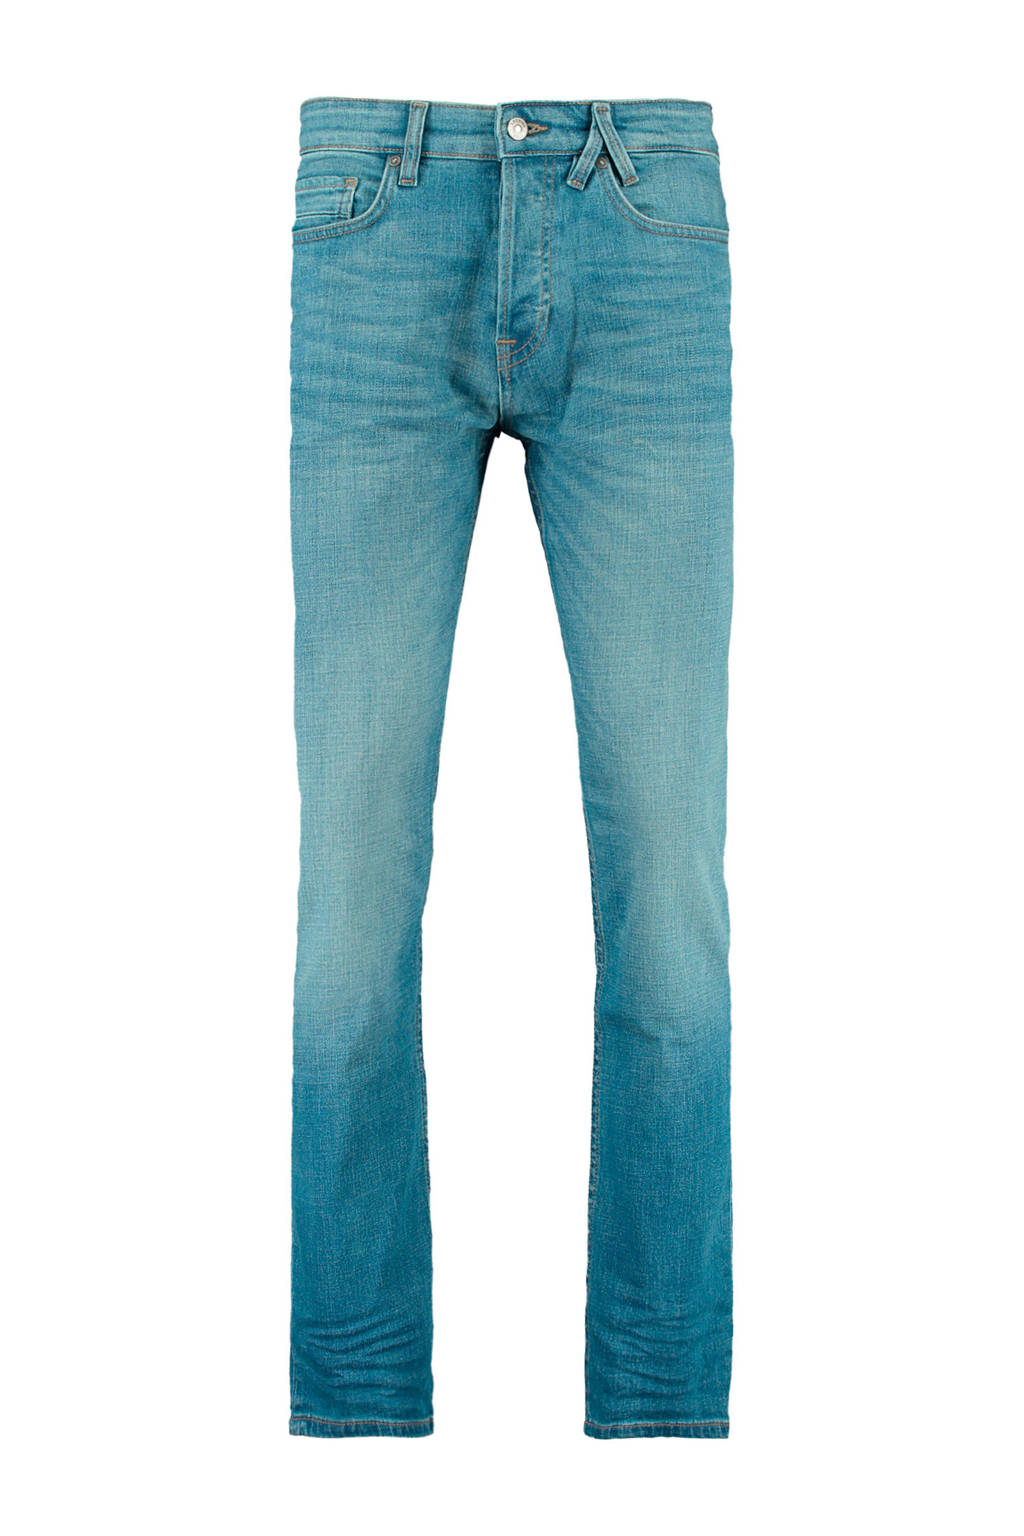 America Today regular fit jeans Dean, Stonewashed